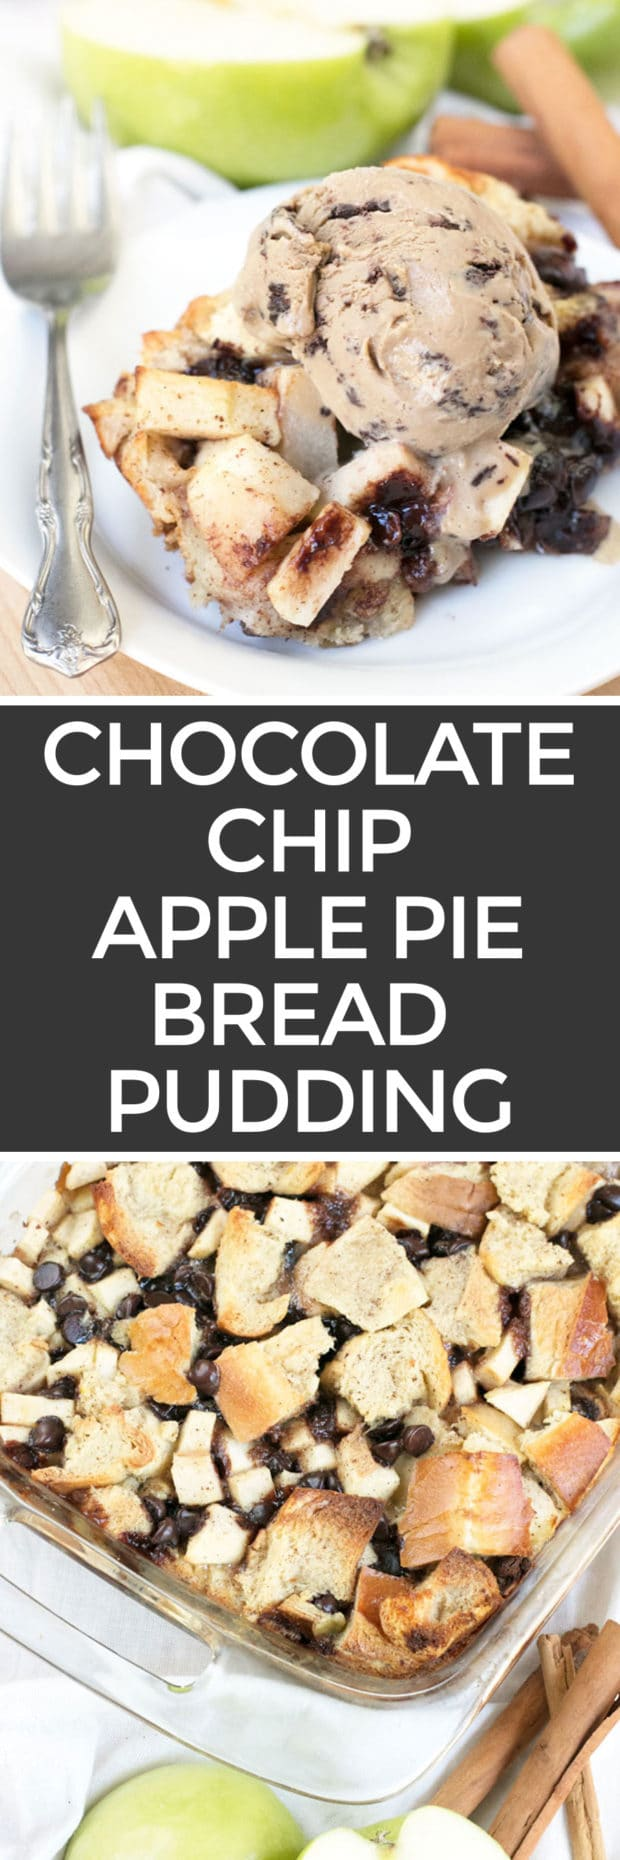 Chocolate Chip Apple Pie Bread Pudding | cakenknife.com